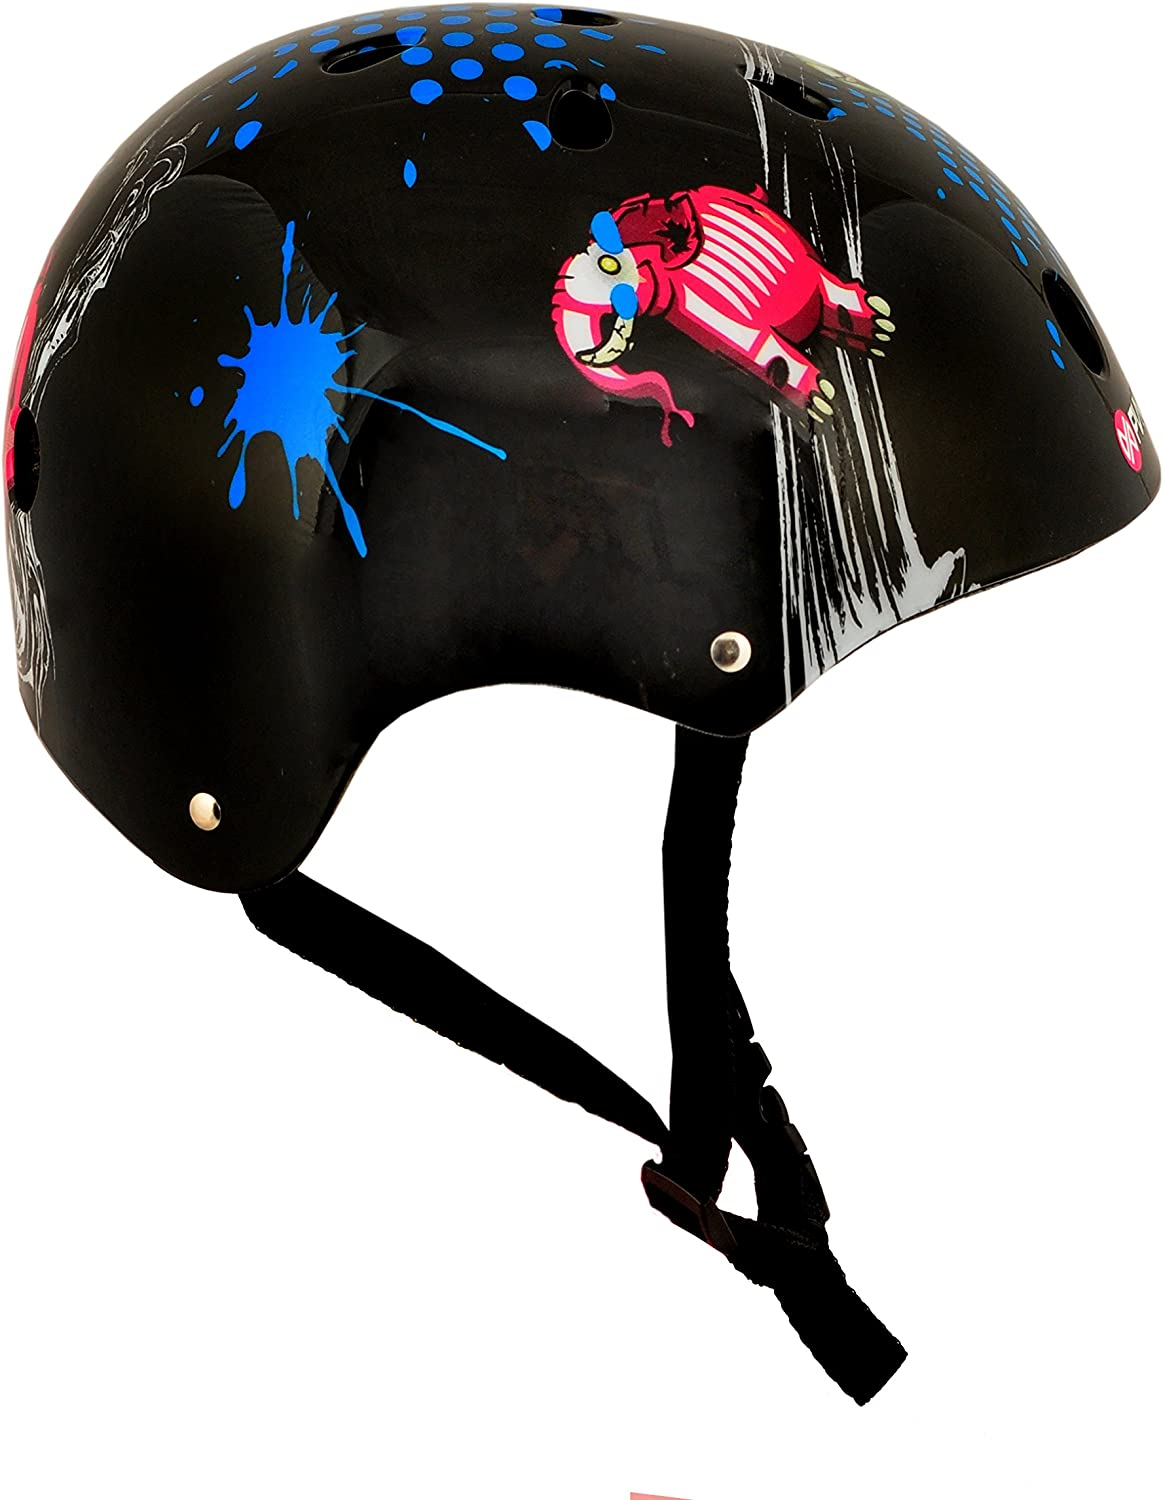 Punisher Skateboards 11-Vent Multi-Sport Skateboard and BMX Helmet Includes Extra Helmet Pads Youth Size Medium Boys and Girls Assorted Styles